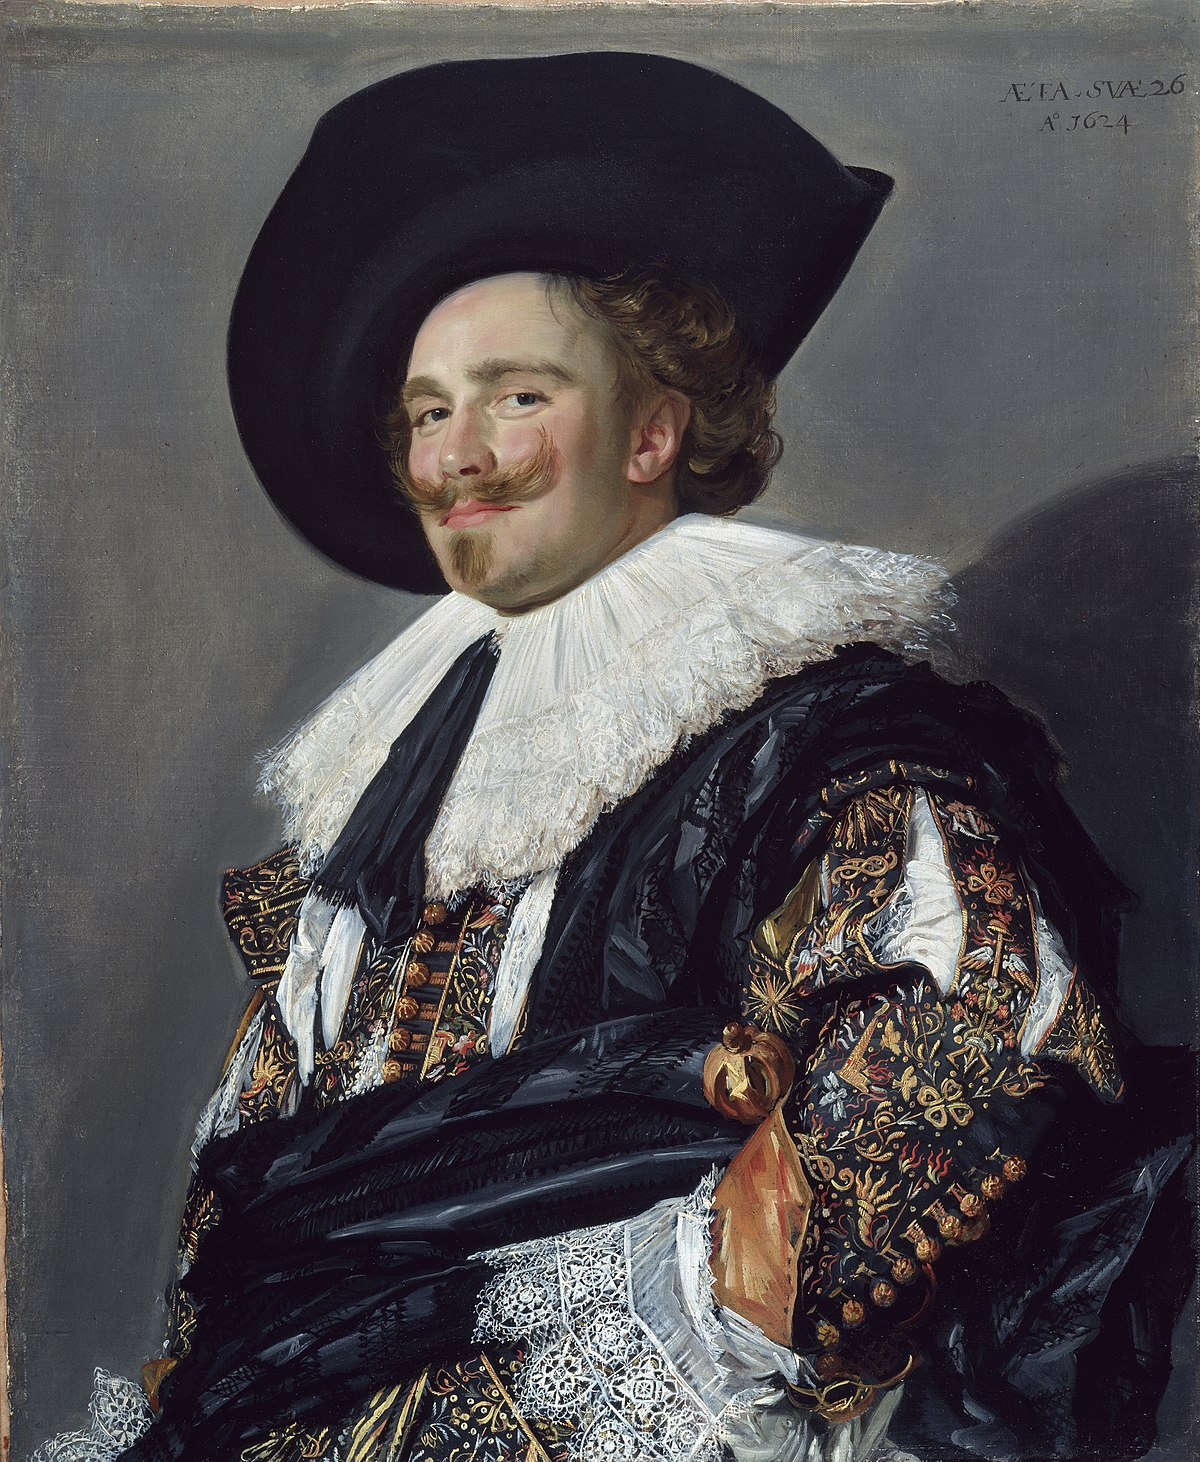 Laughing Cavalier - Wikipedia